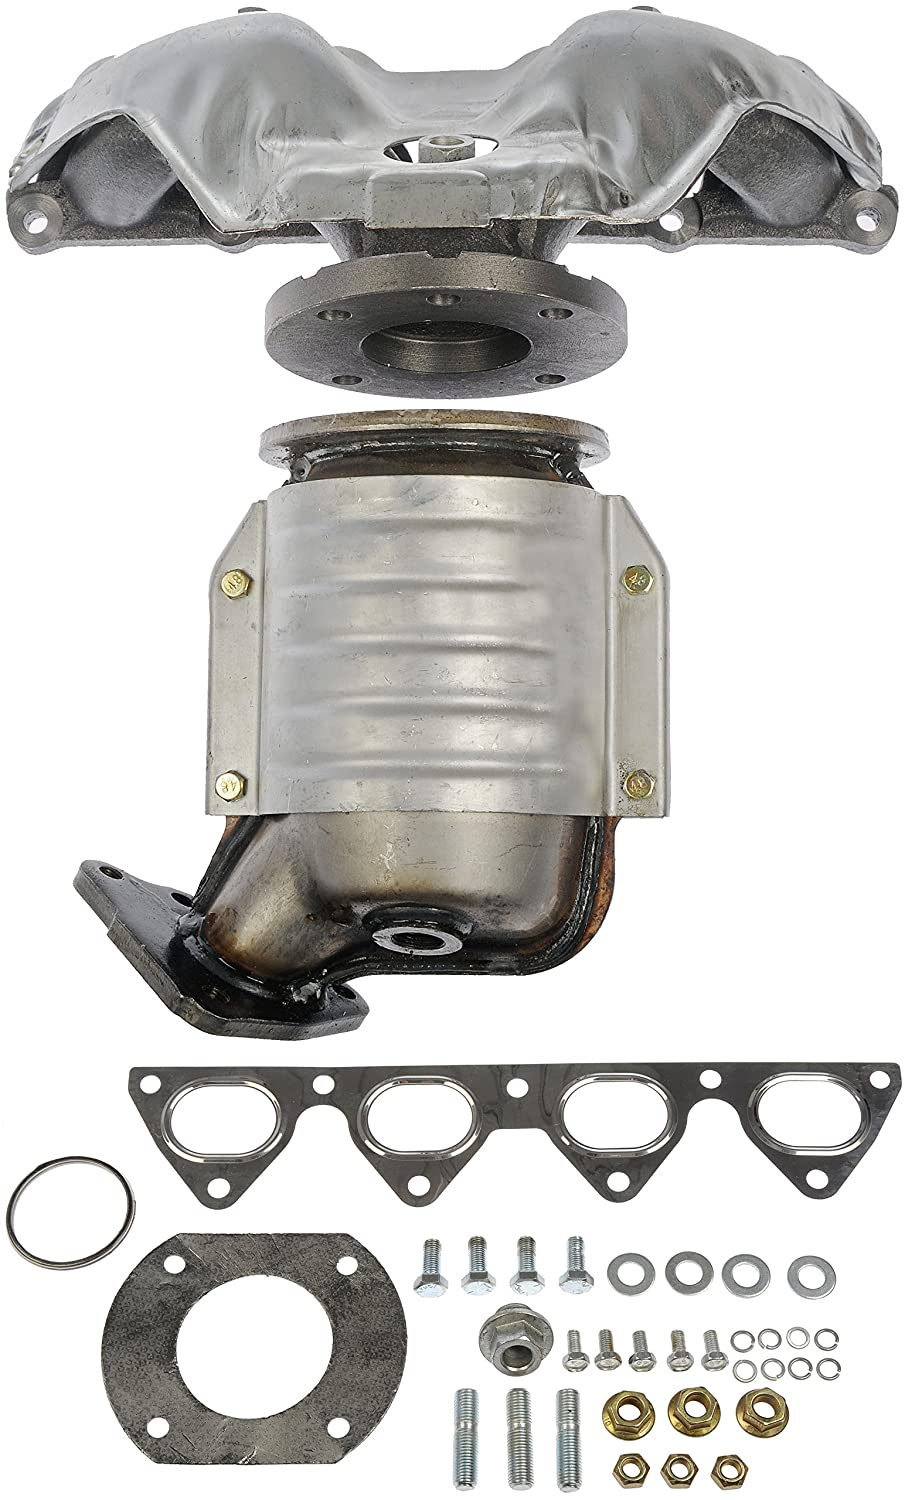 Amazon.com: Dorman 674 439 Exhaust Manifold With Integrated Catalytic  Converter (Non CARB Compliant): Automotive